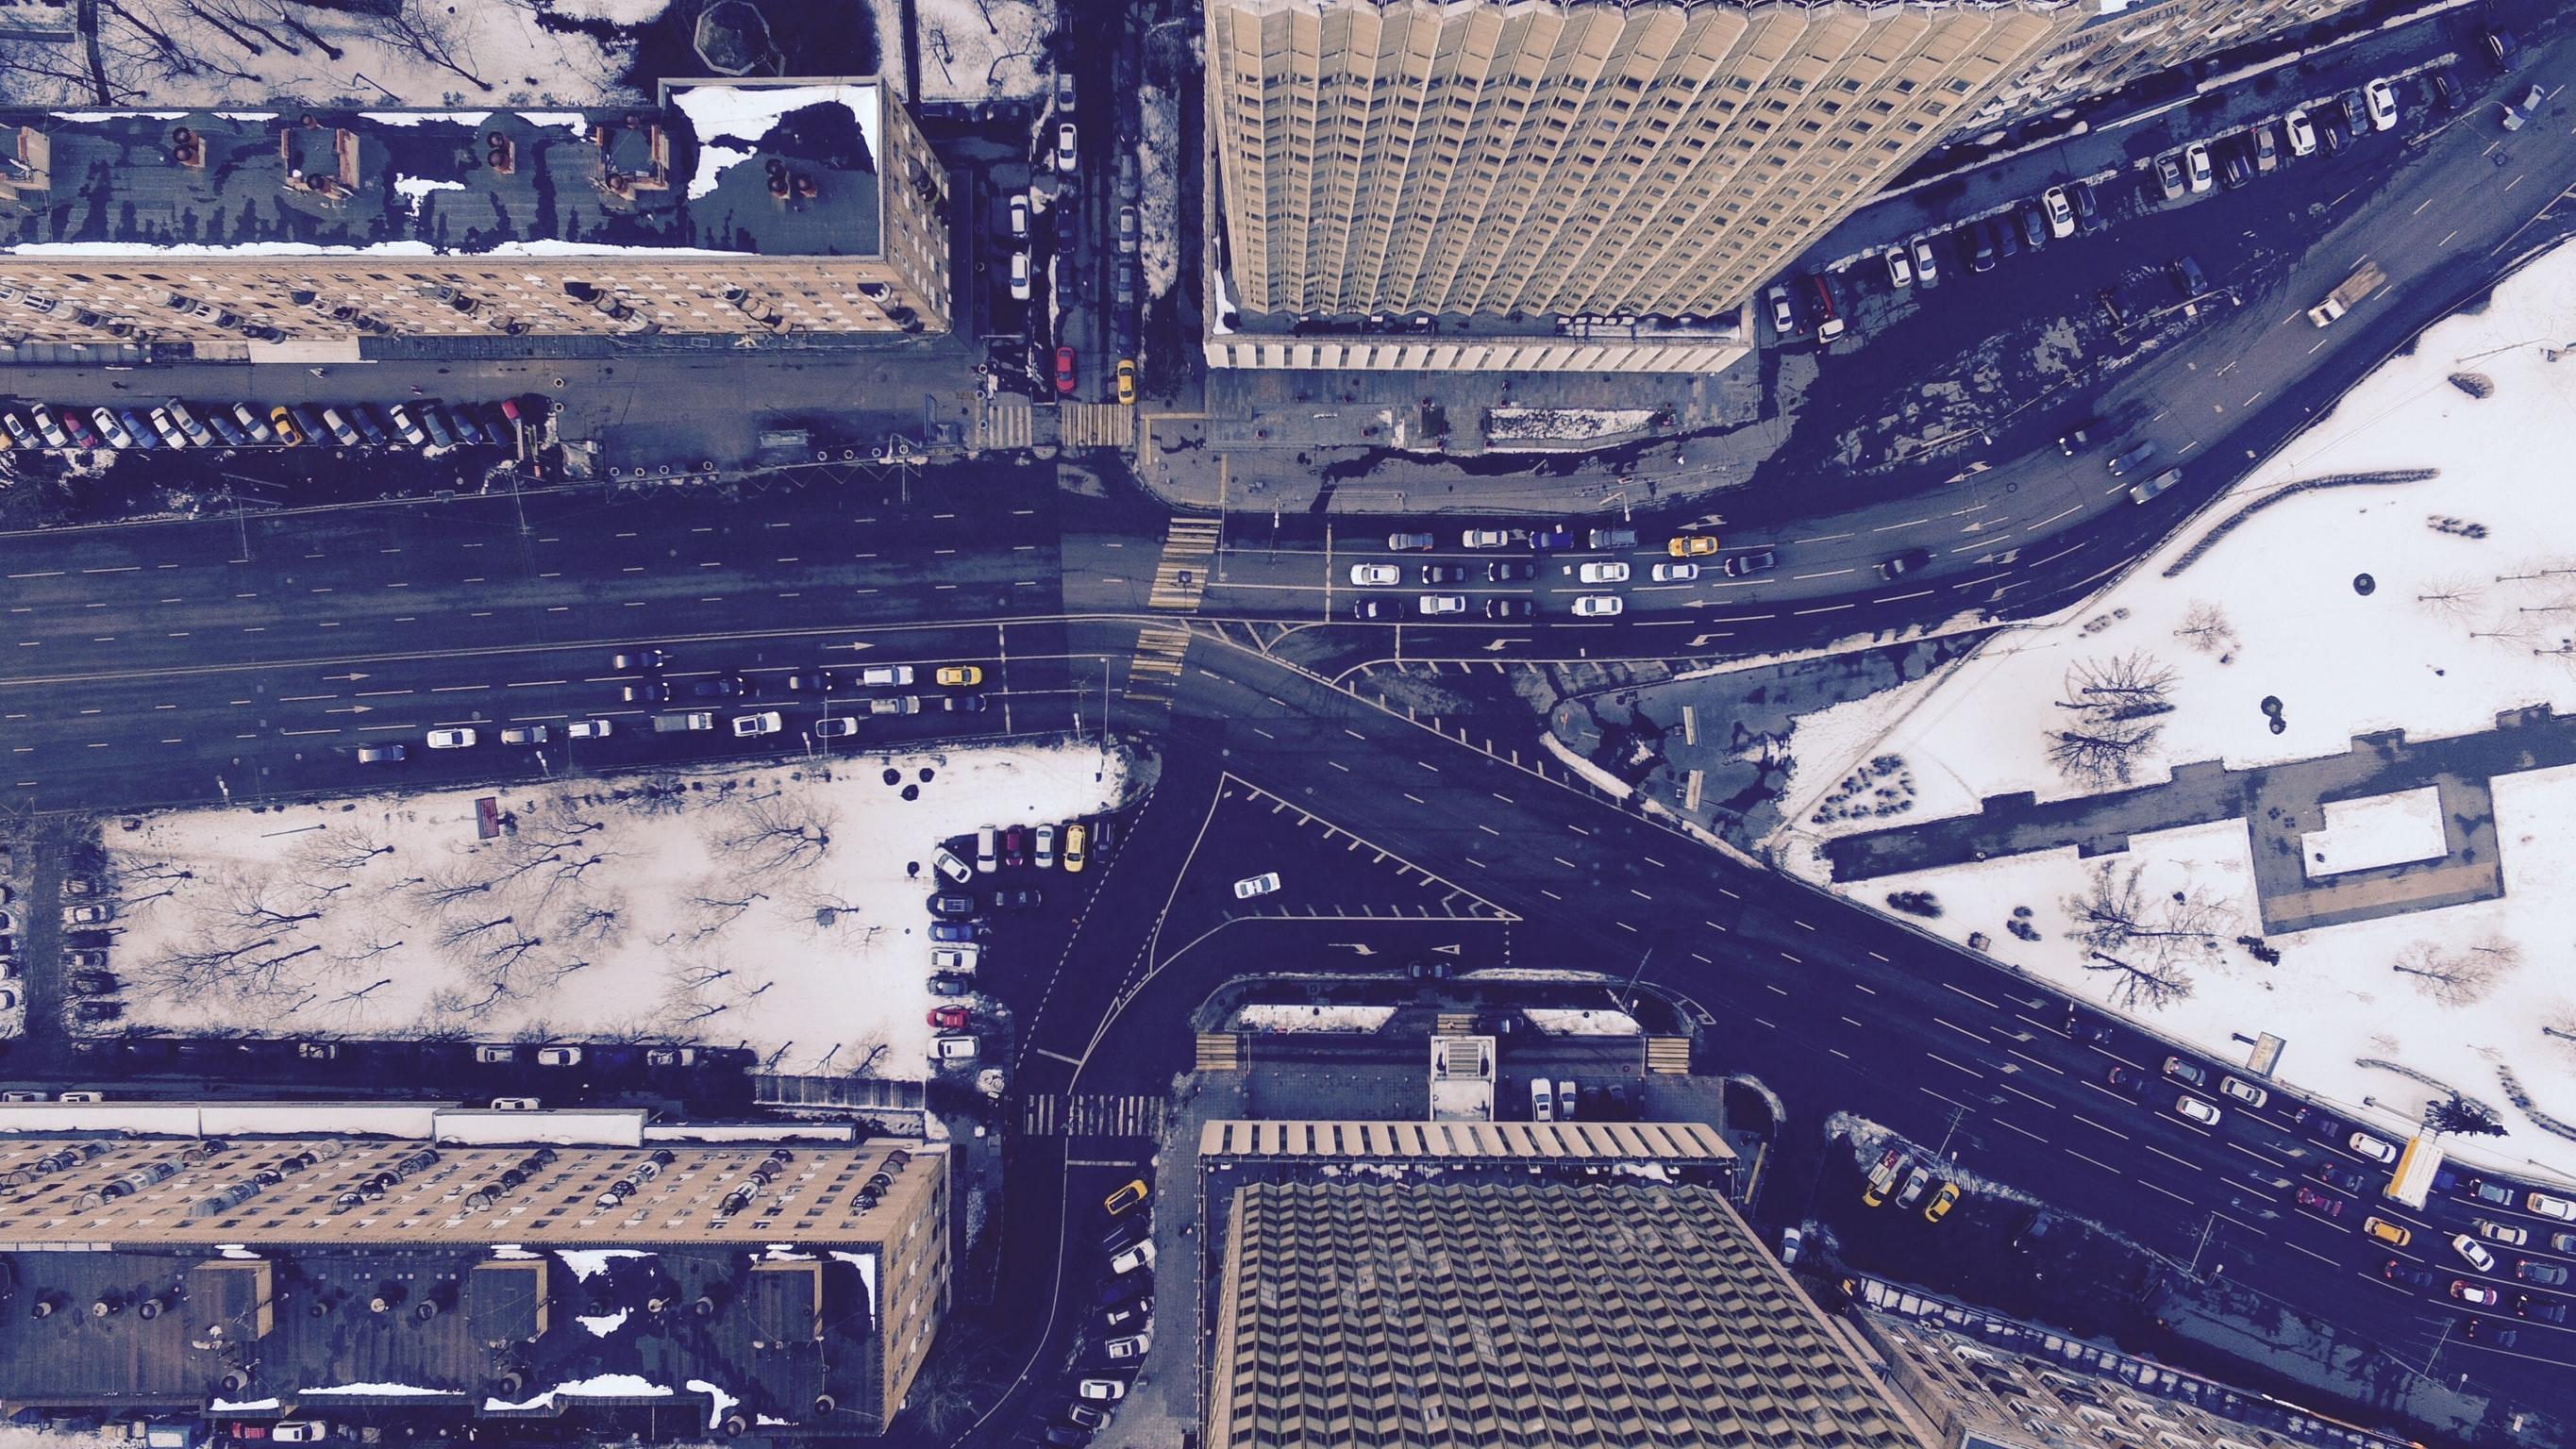 Drone shot of roads surrounded by skyscrapers in daytime in Москва, город Москва, Россия